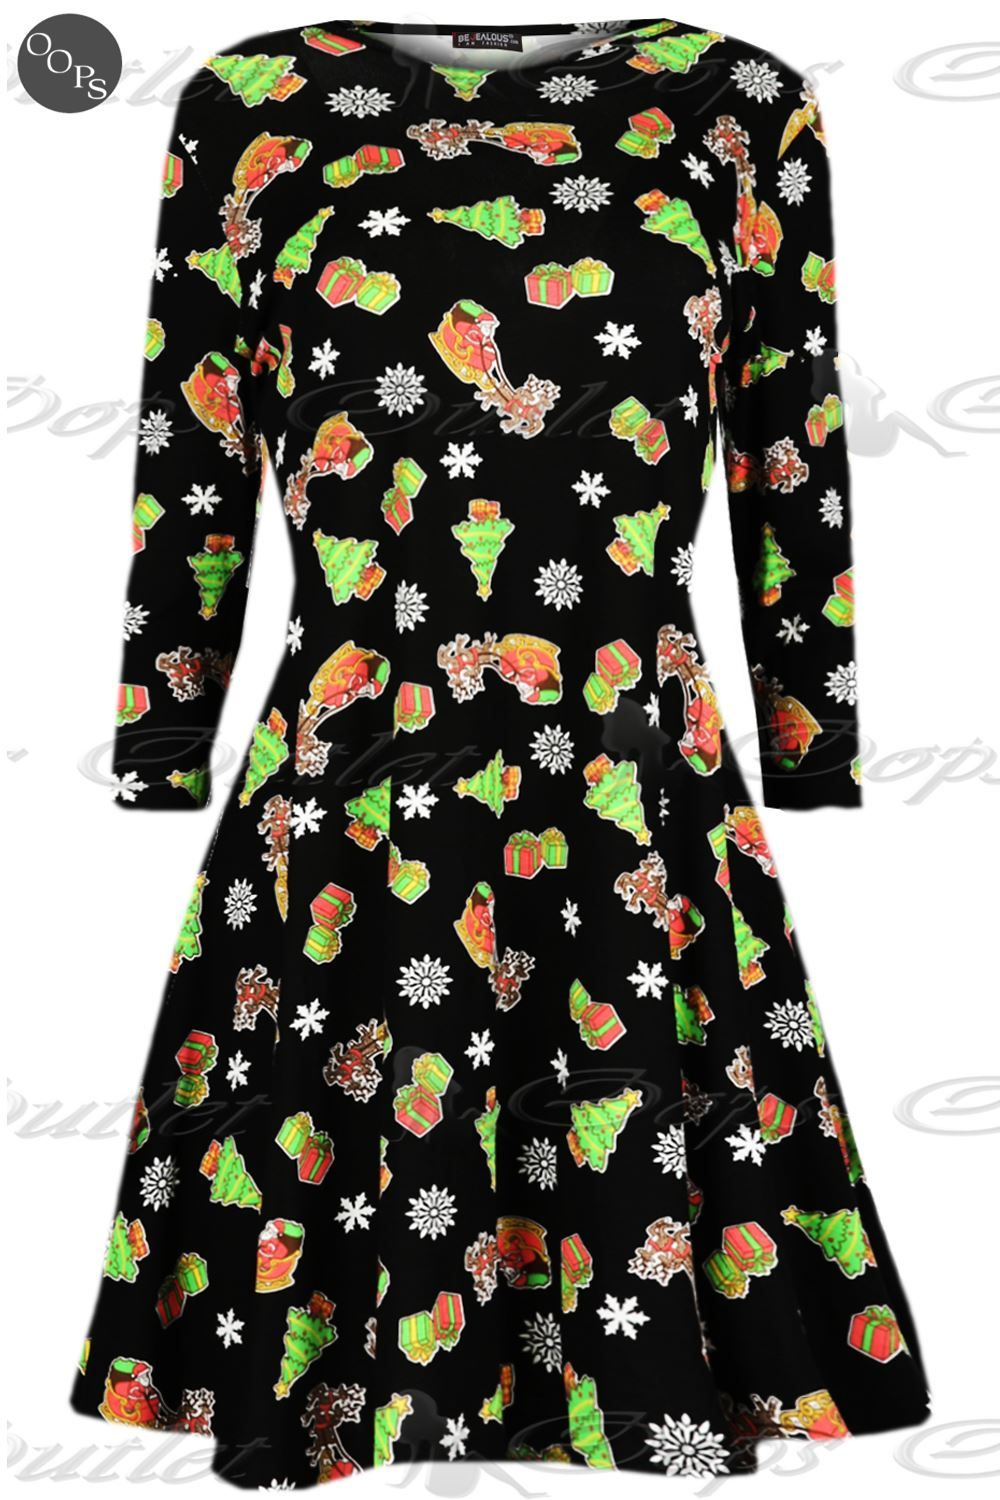 7effe922ea Womens-Ladies-Long-Sleeves-Xmas-Santa-Gifts-Snowman-Christmas-Print-Swing- Dress